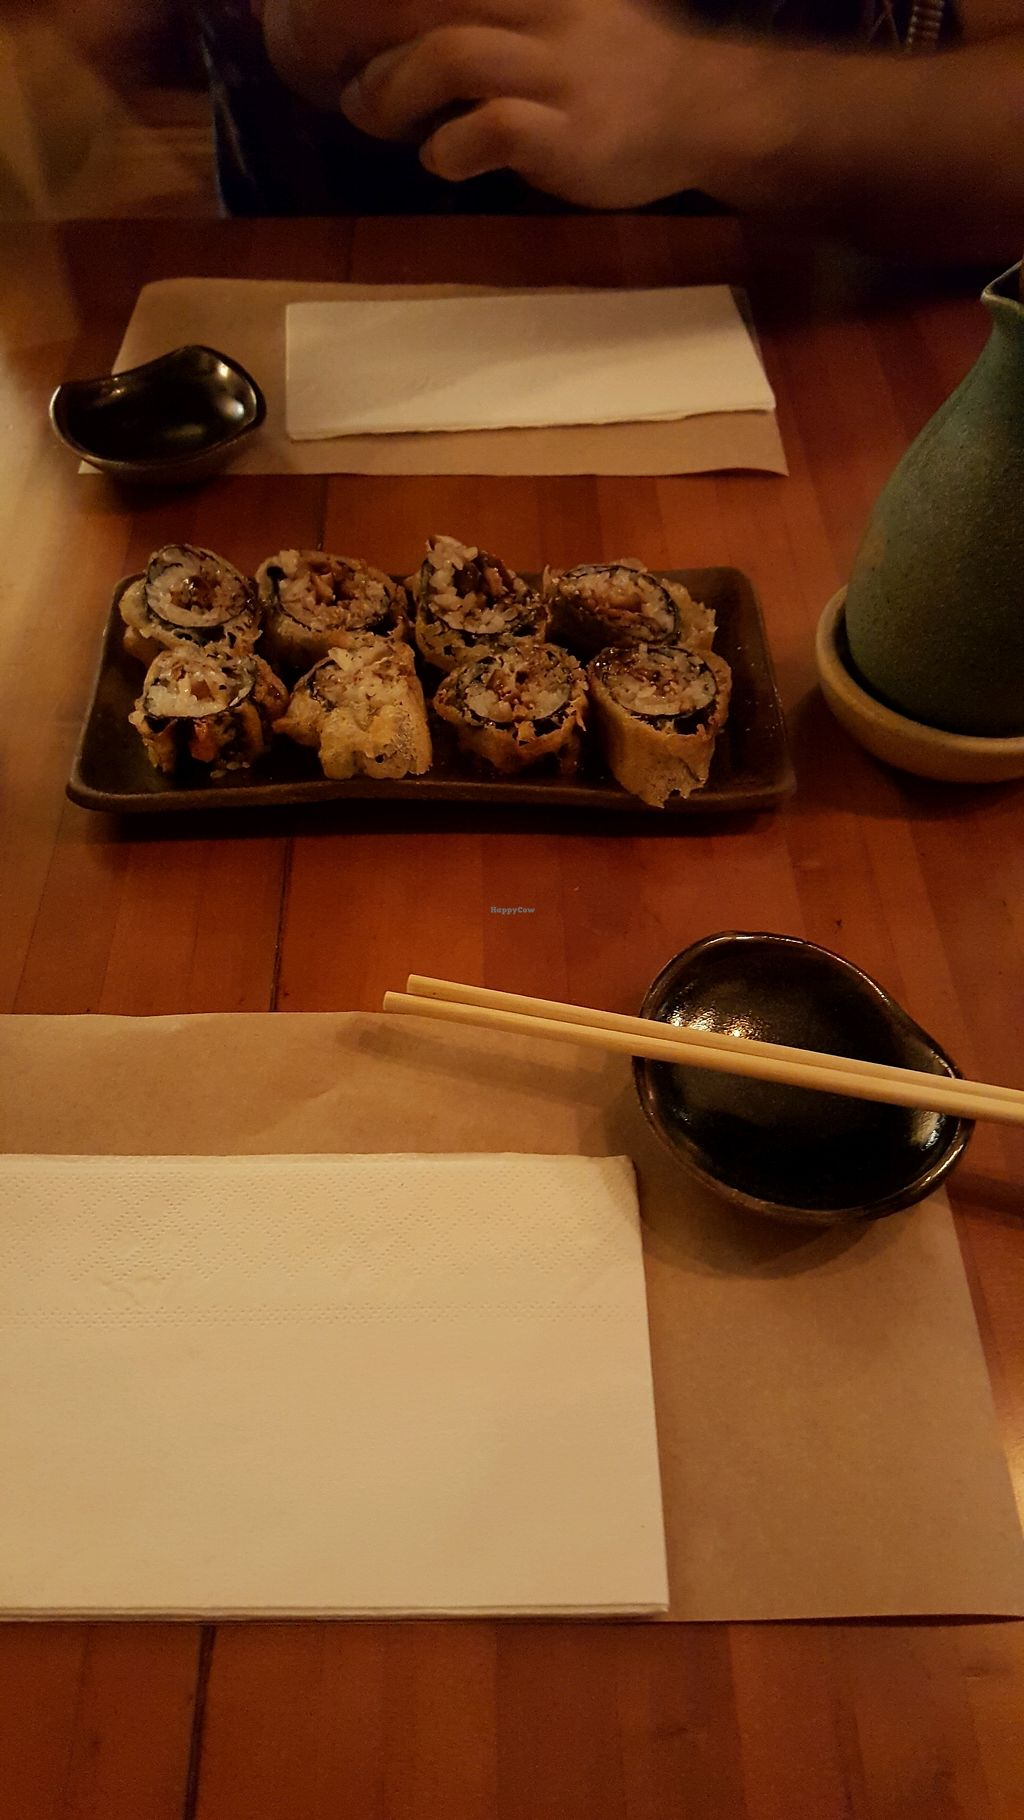 """Photo of Sushimar Vegano  by <a href=""""/members/profile/FernSato"""">FernSato</a> <br/>Shimeji hot rolls <br/> January 9, 2018  - <a href='/contact/abuse/image/106773/344703'>Report</a>"""